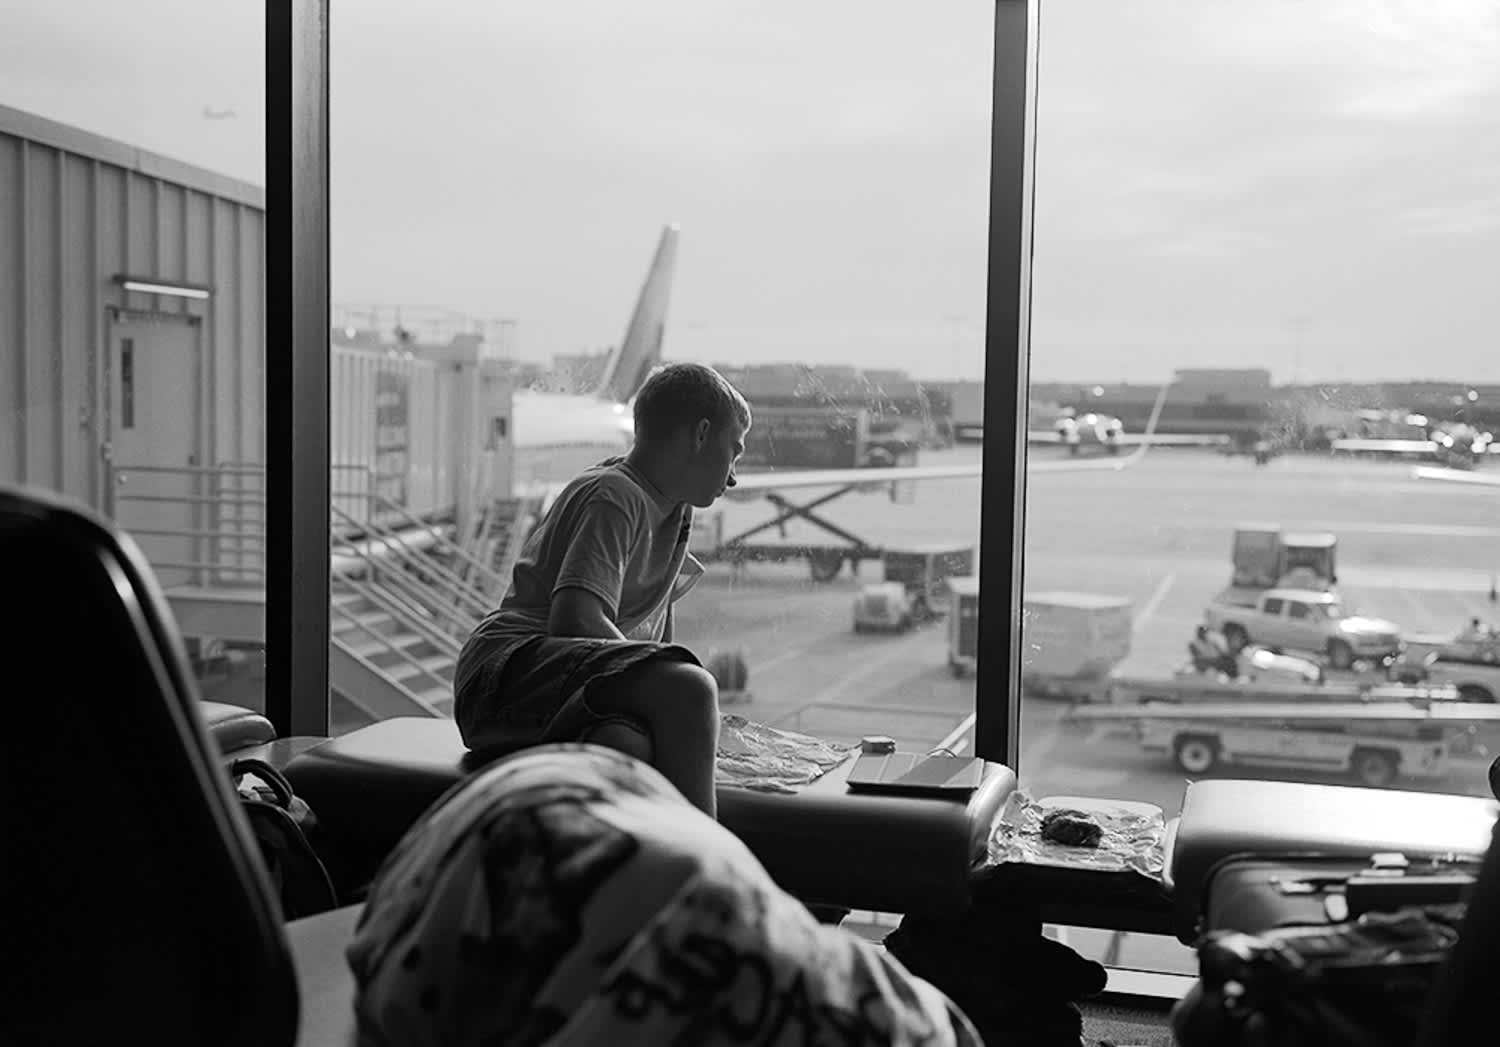 Photographer Steinmetz Casts Serene View Of Hartsfield-Jackson At High Museum Mark Steinmetz's photographs are on view at the High Museum now through June 3